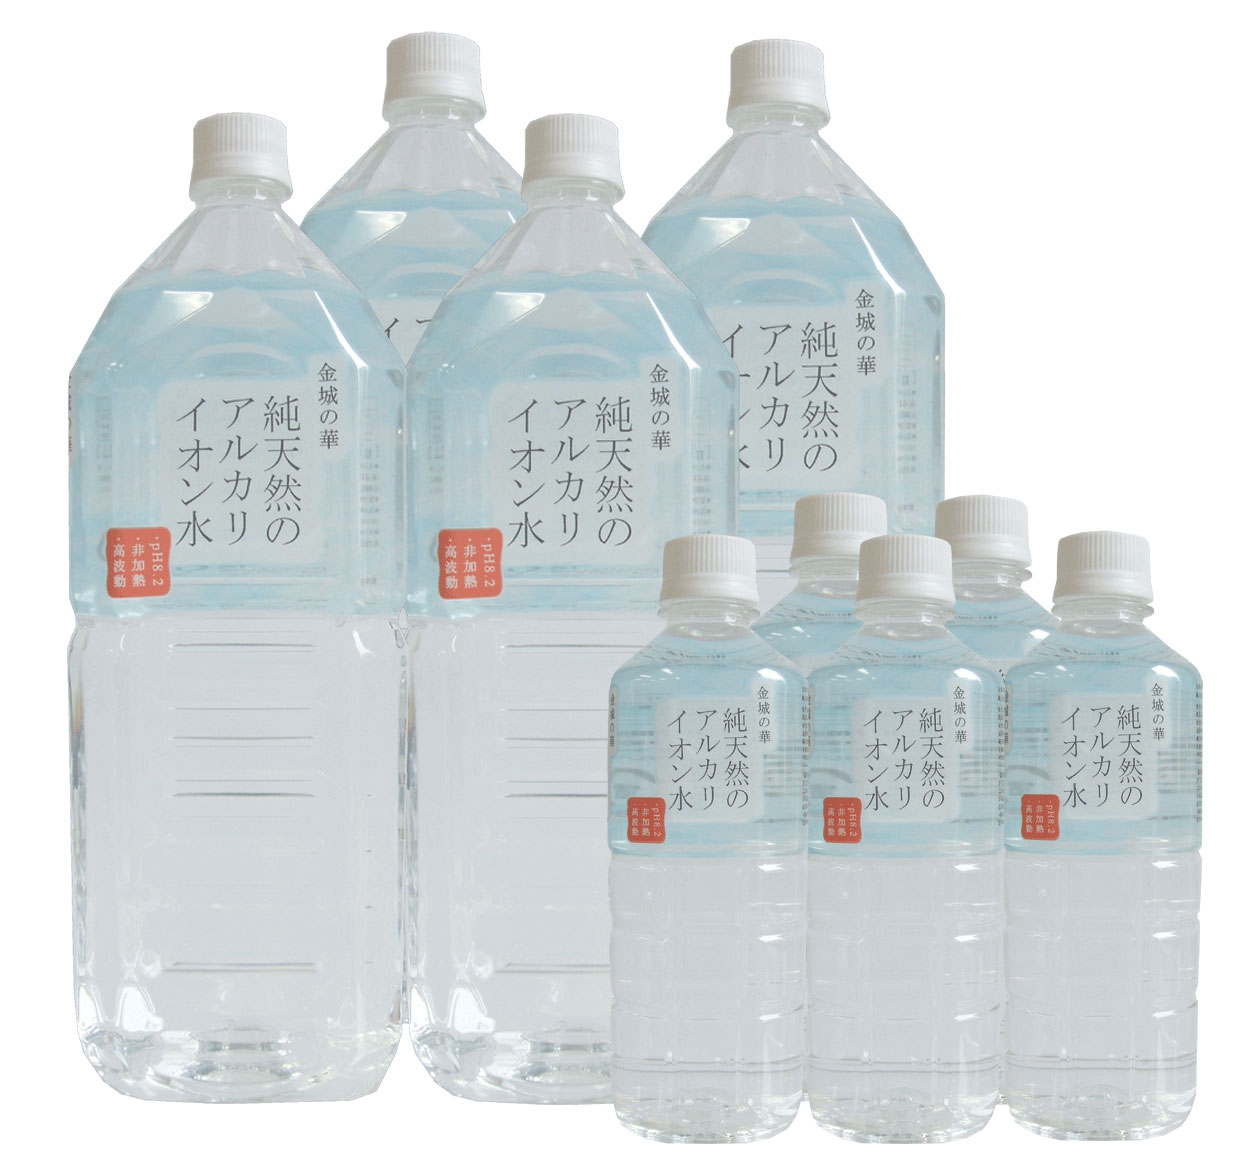 ★! ★ Shimane Prefecture Kinjo-Cho NET natural alkaline water Kinjo Hua 2 l 2 cases 16 pieces cod not available! Bias Friday after shipping. 10P28Oct13